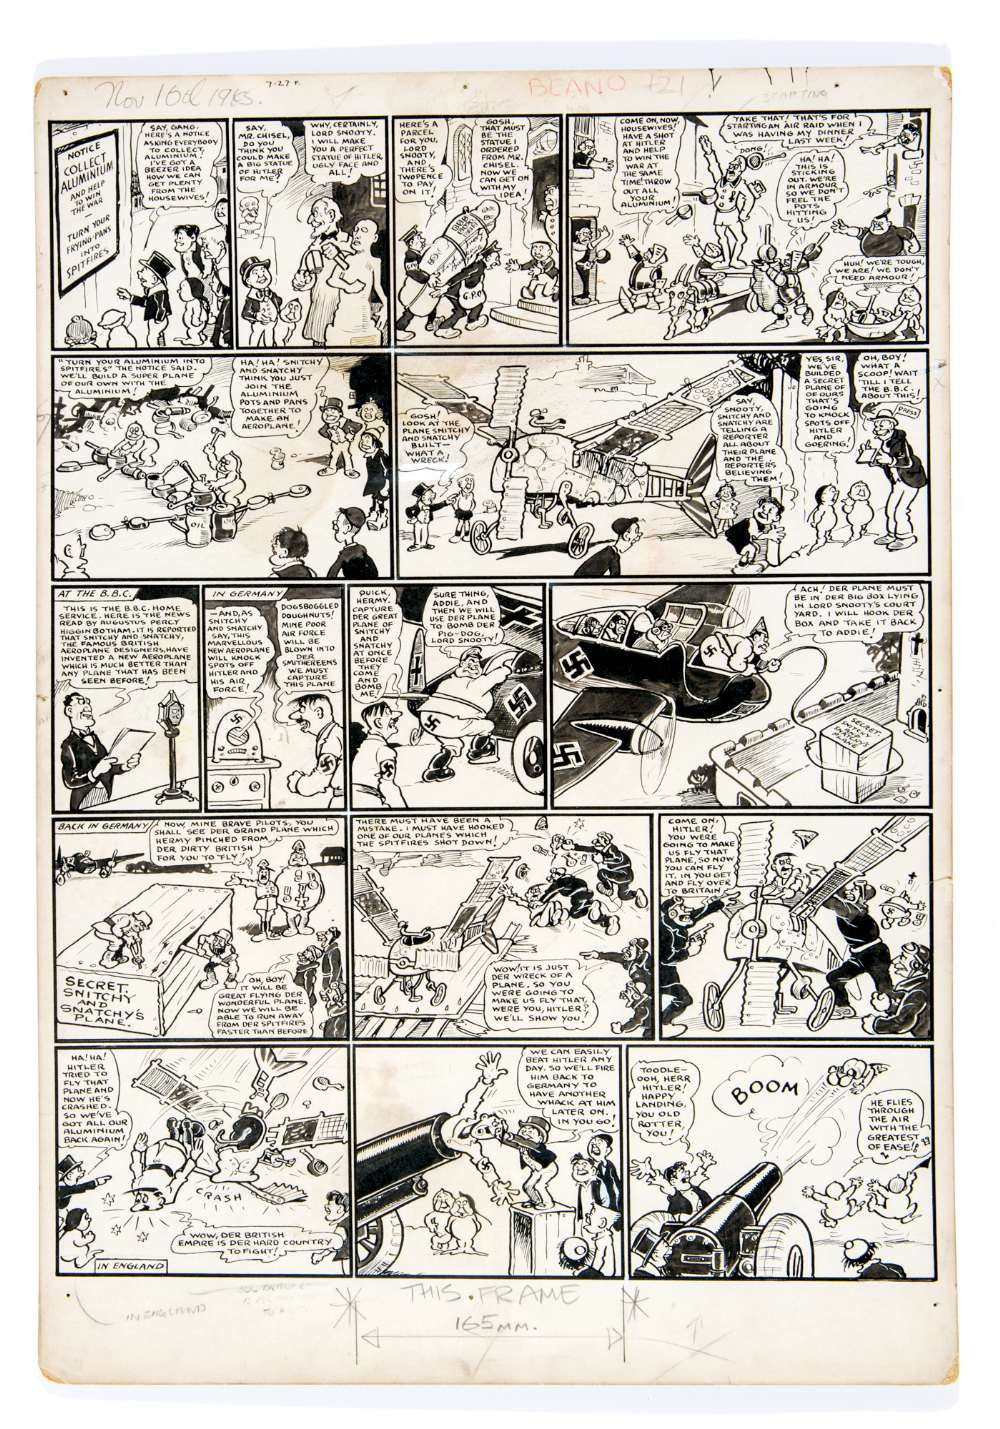 Lot 24 - Lord Snooty and his Pals original propaganda artwork by Dudley Watkins from The Beano Nov 16 1943 (